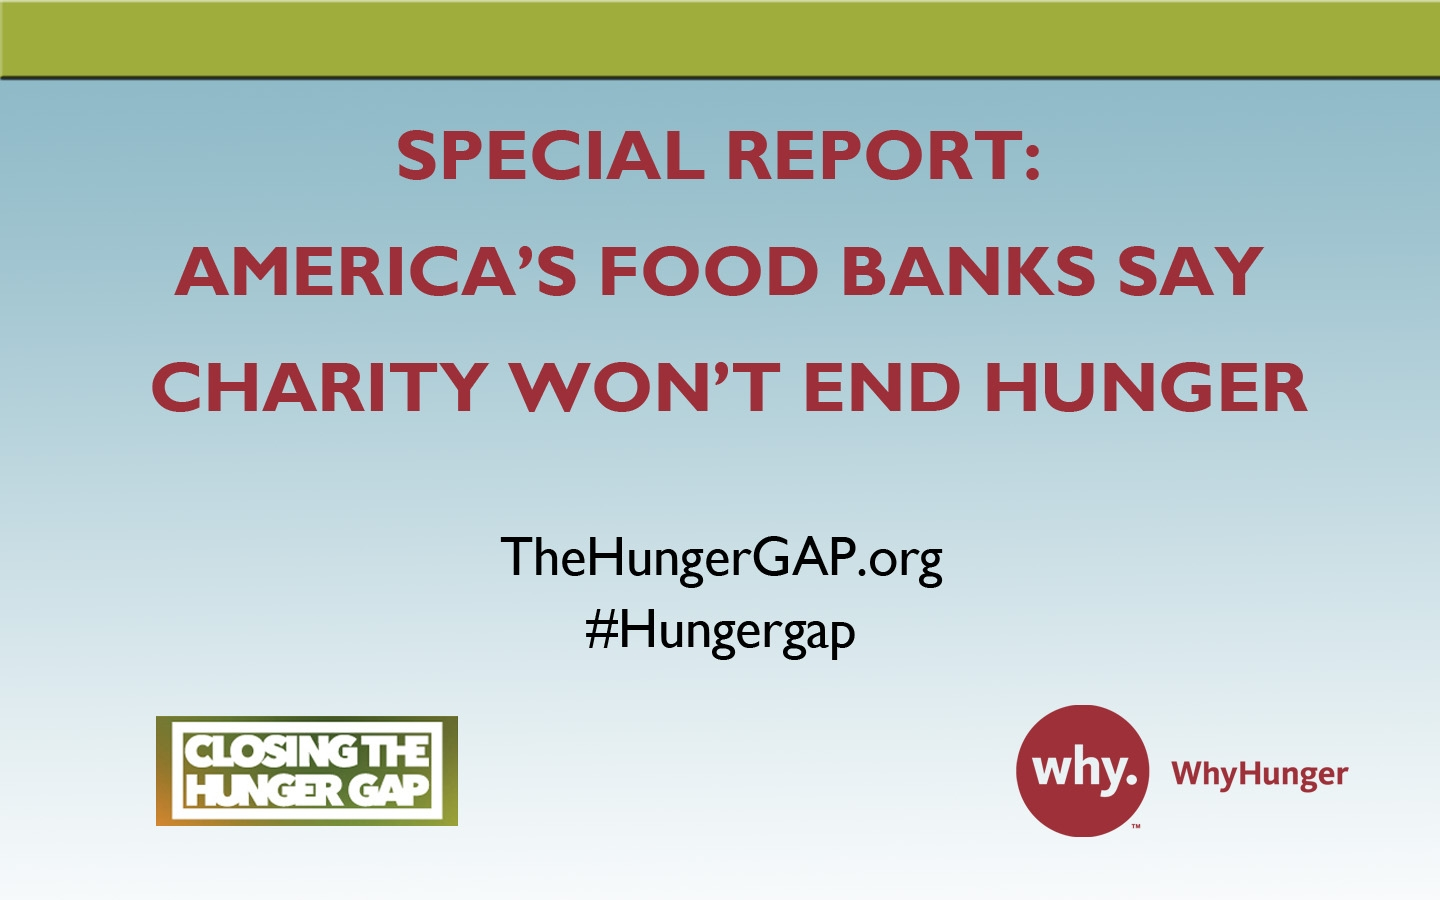 Special Report: America's Food Banks Say Charity Won't End Hunger